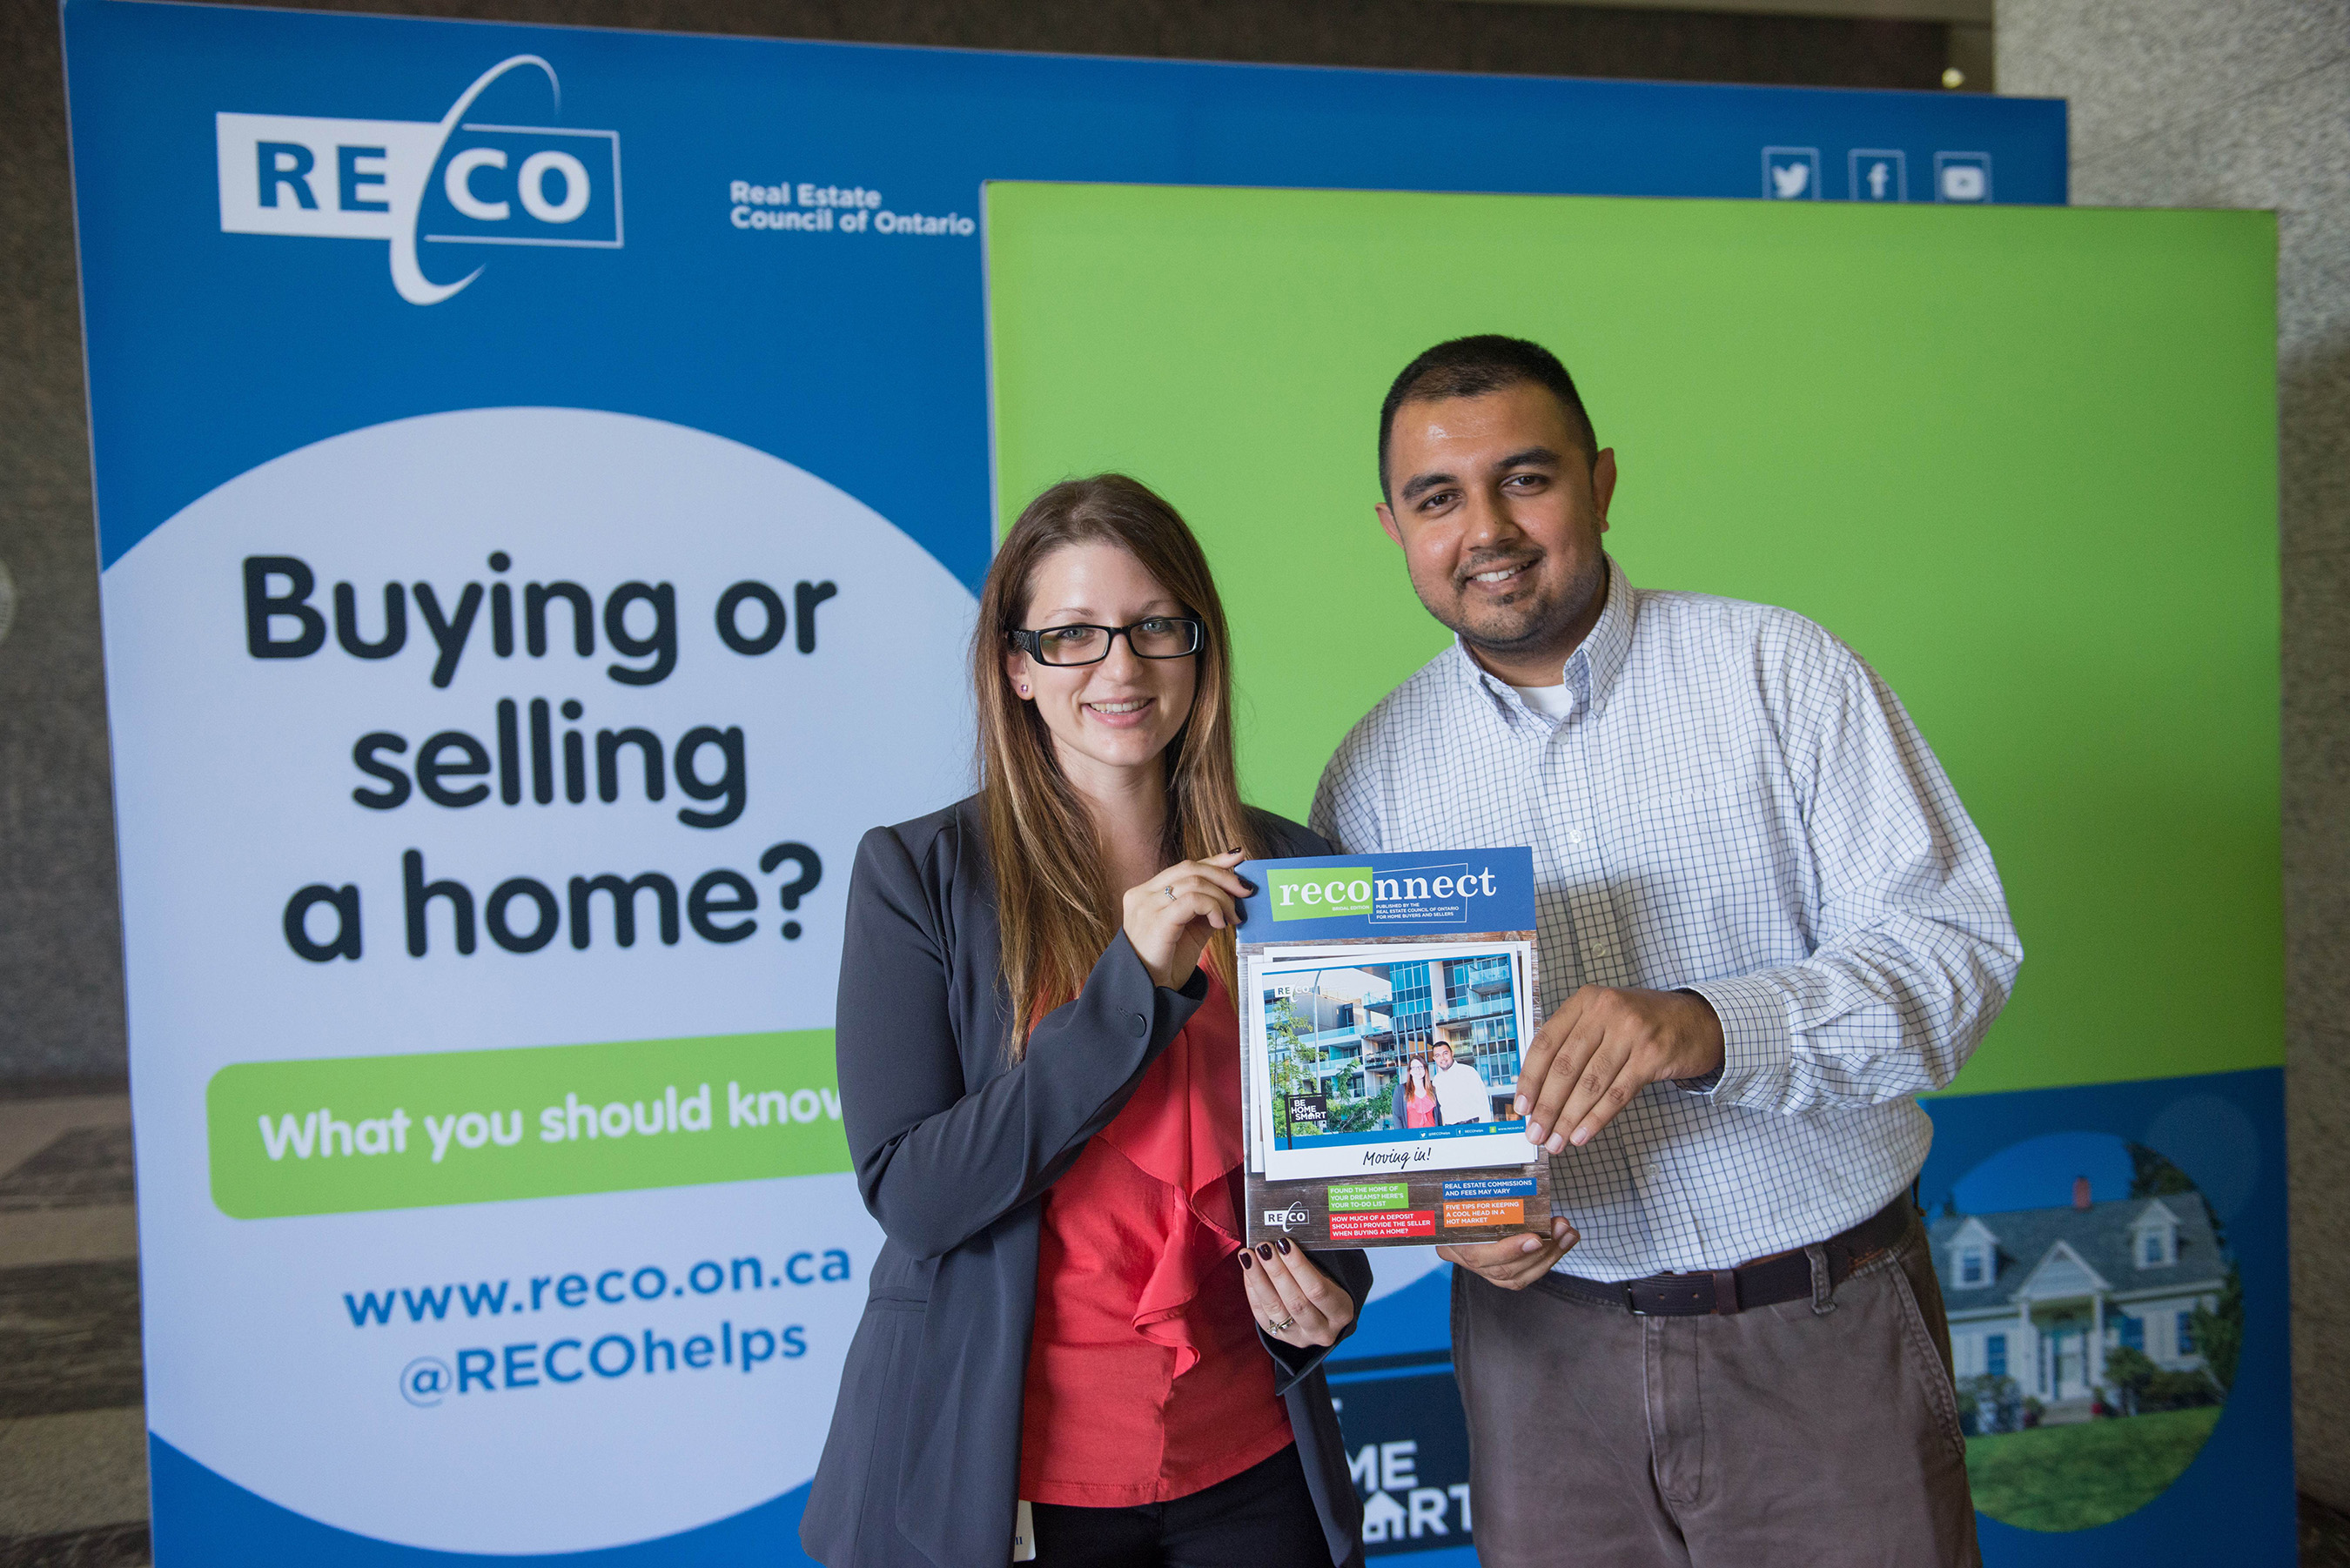 Buying your first home together reco website - Be Home Smart Booth